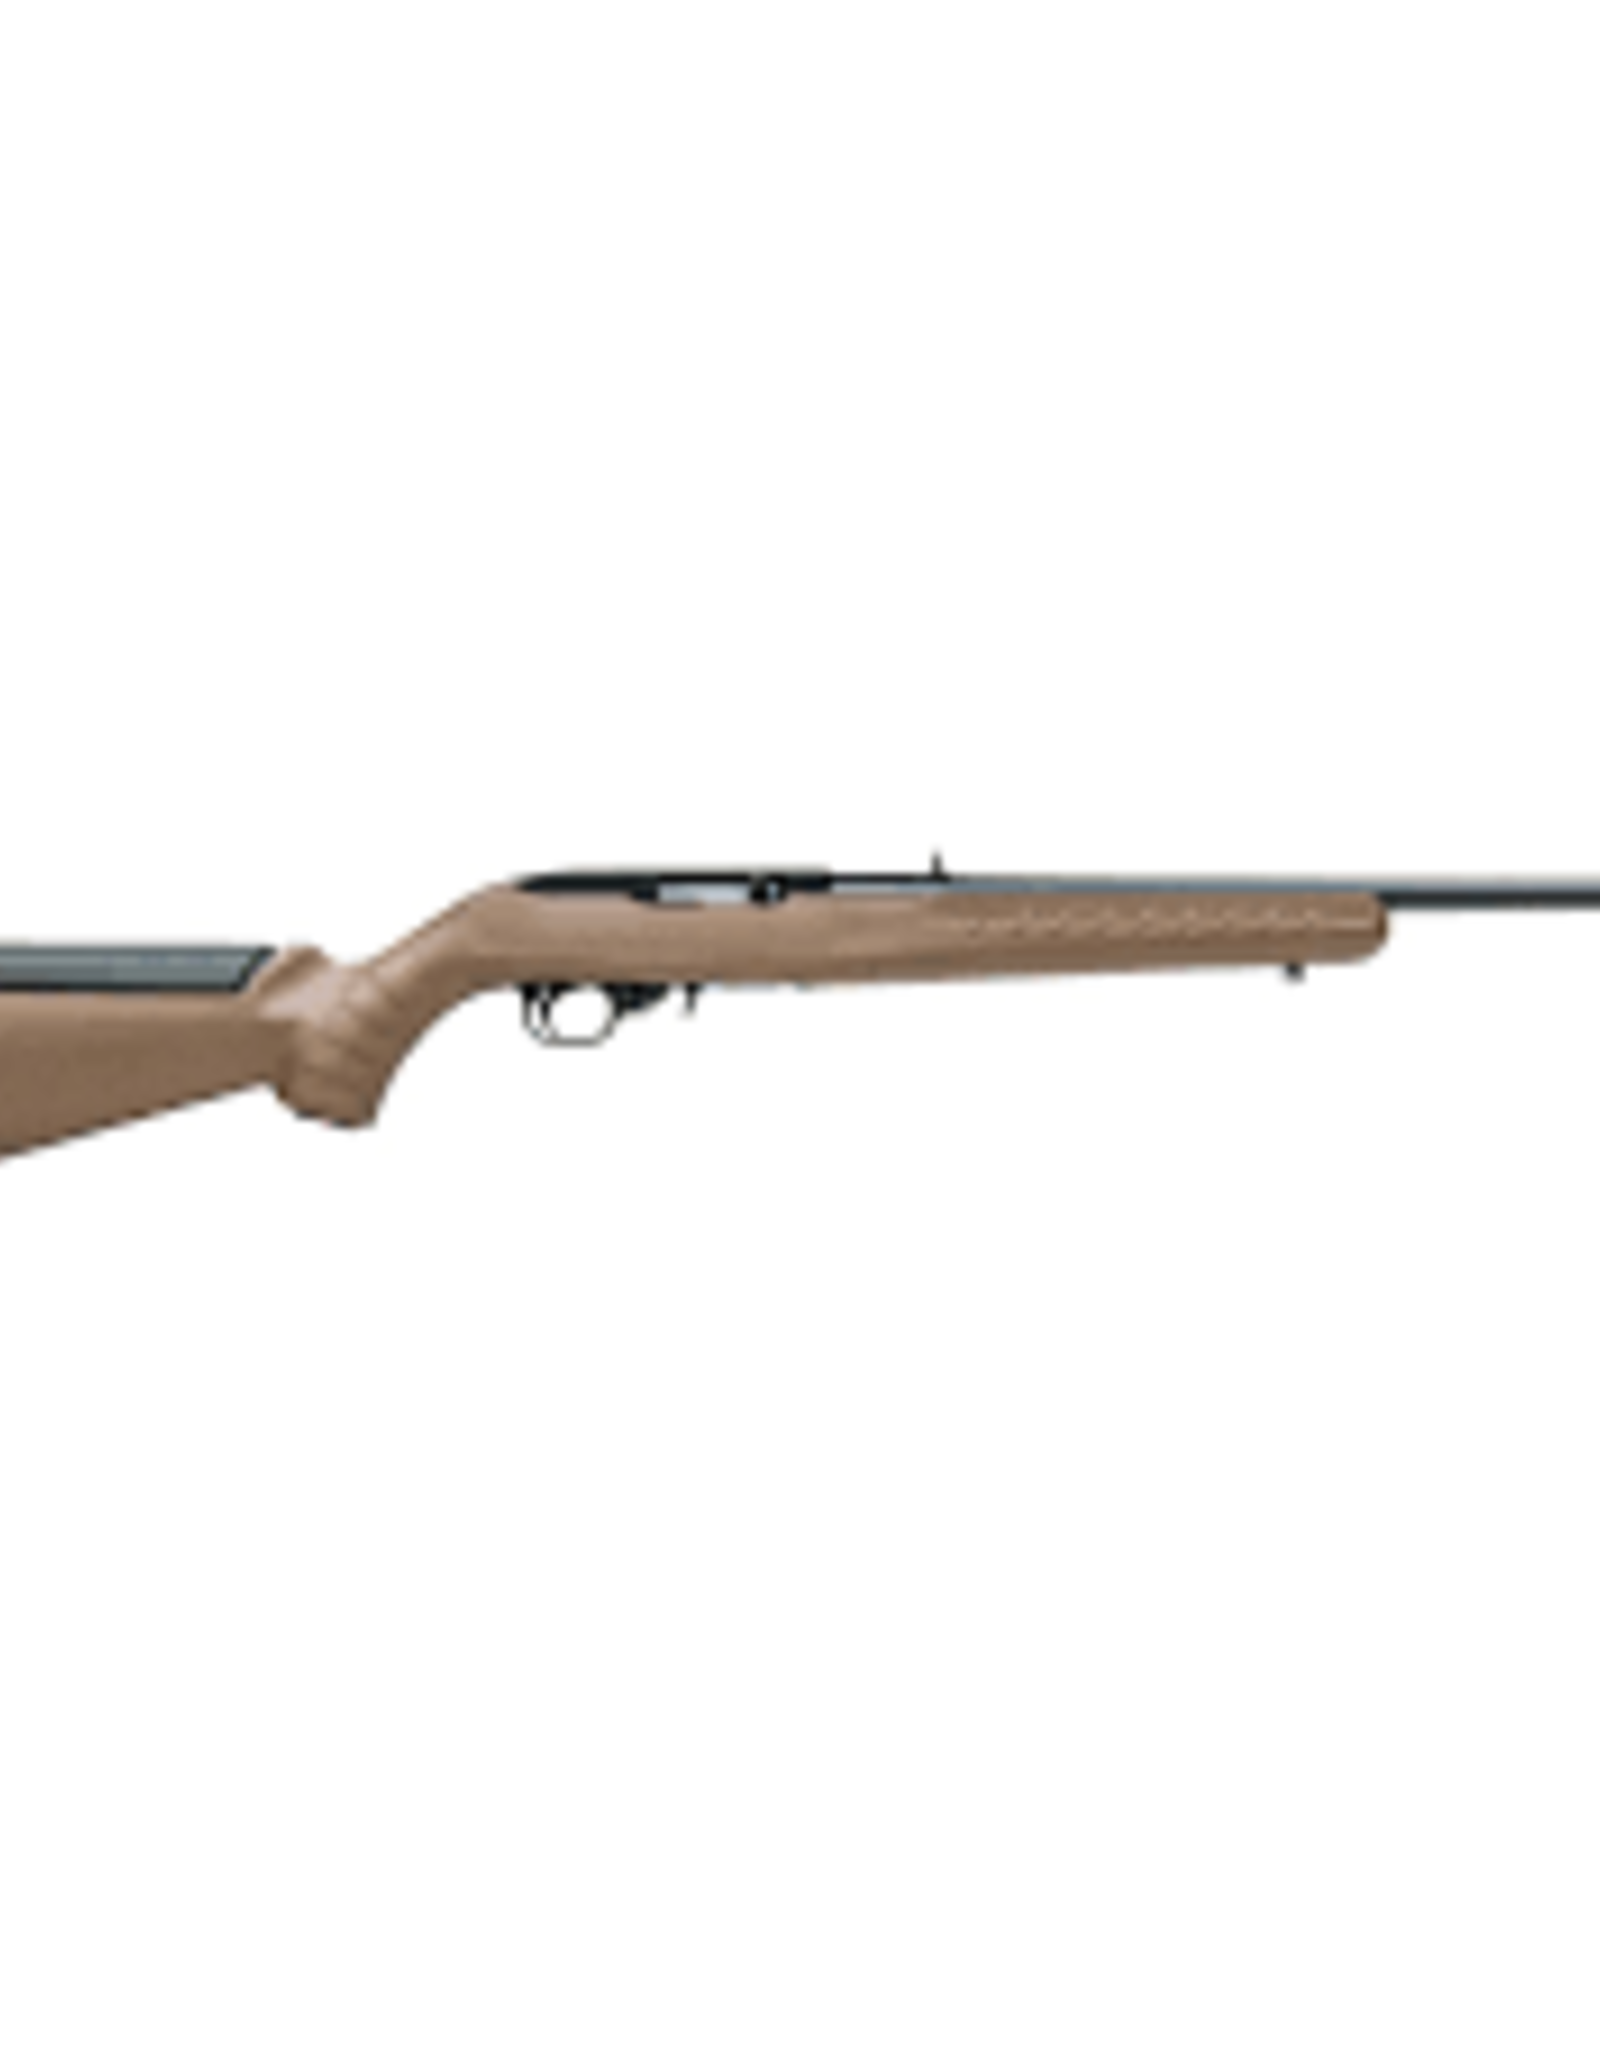 Ruger 10/22 22 LR Carbine W/Copper Mica Stock